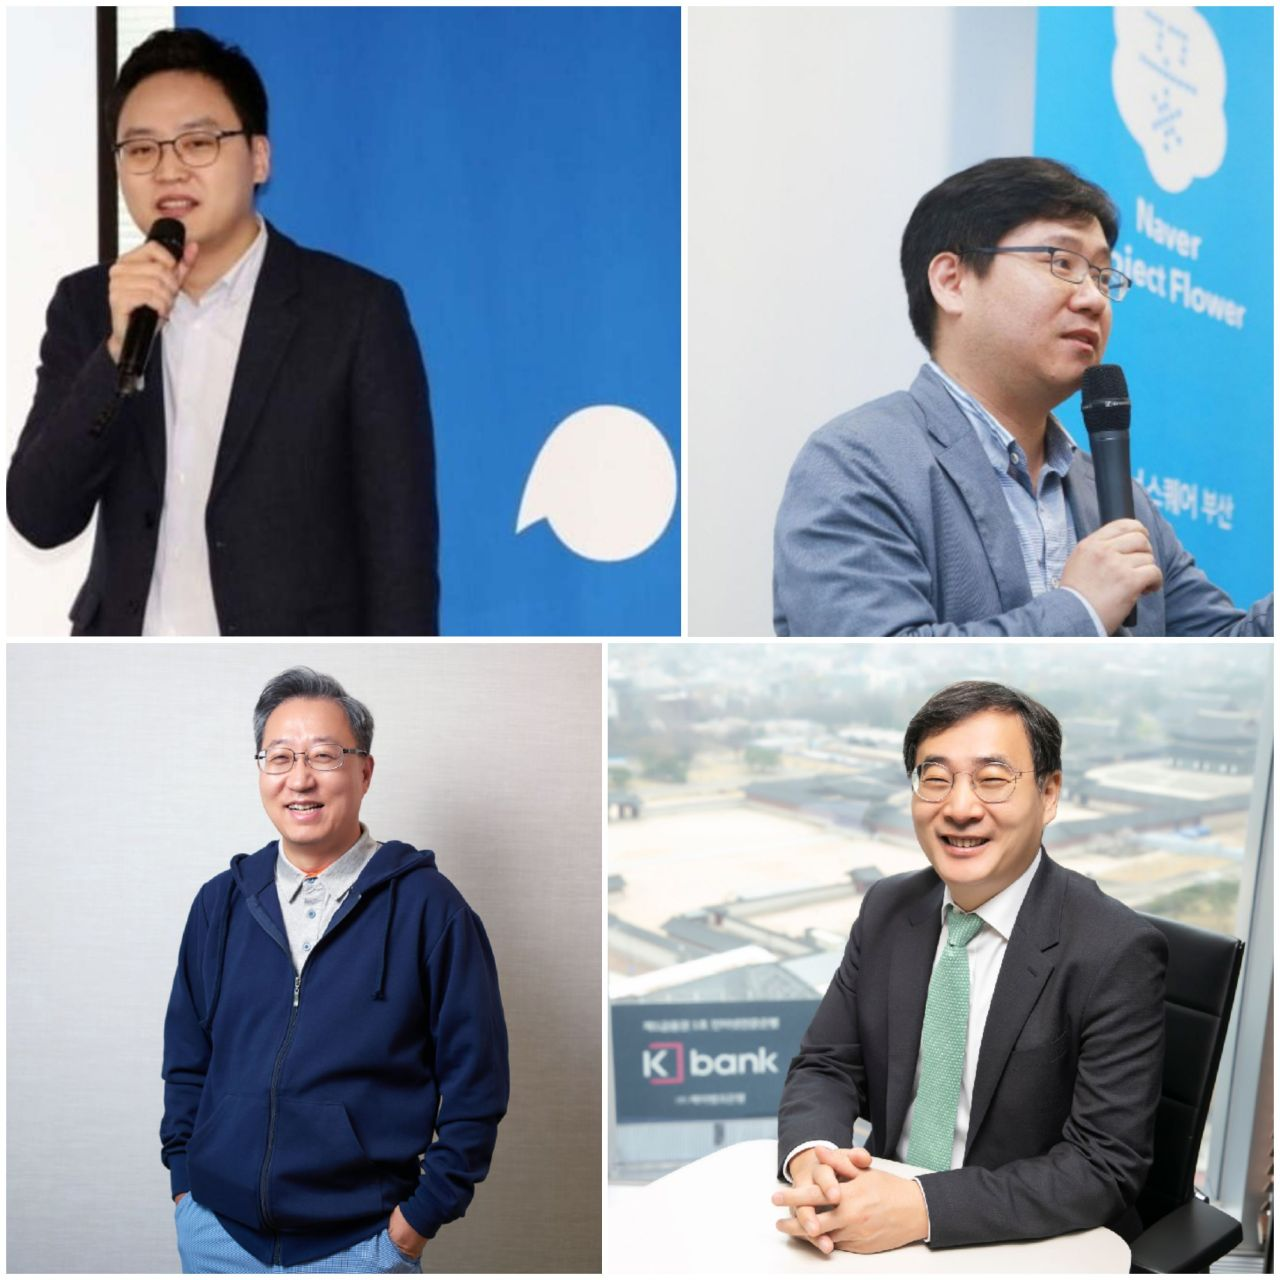 (Clockwise) Fintech startup Viva Republica CEO Lee Seung-gun, Naver Financial Group CEO Choi In-hyuk, K bank CEO Lee Moon-hwan and Kakao Bank CEO Yoon Ho-young (Yonhap and respective companies)